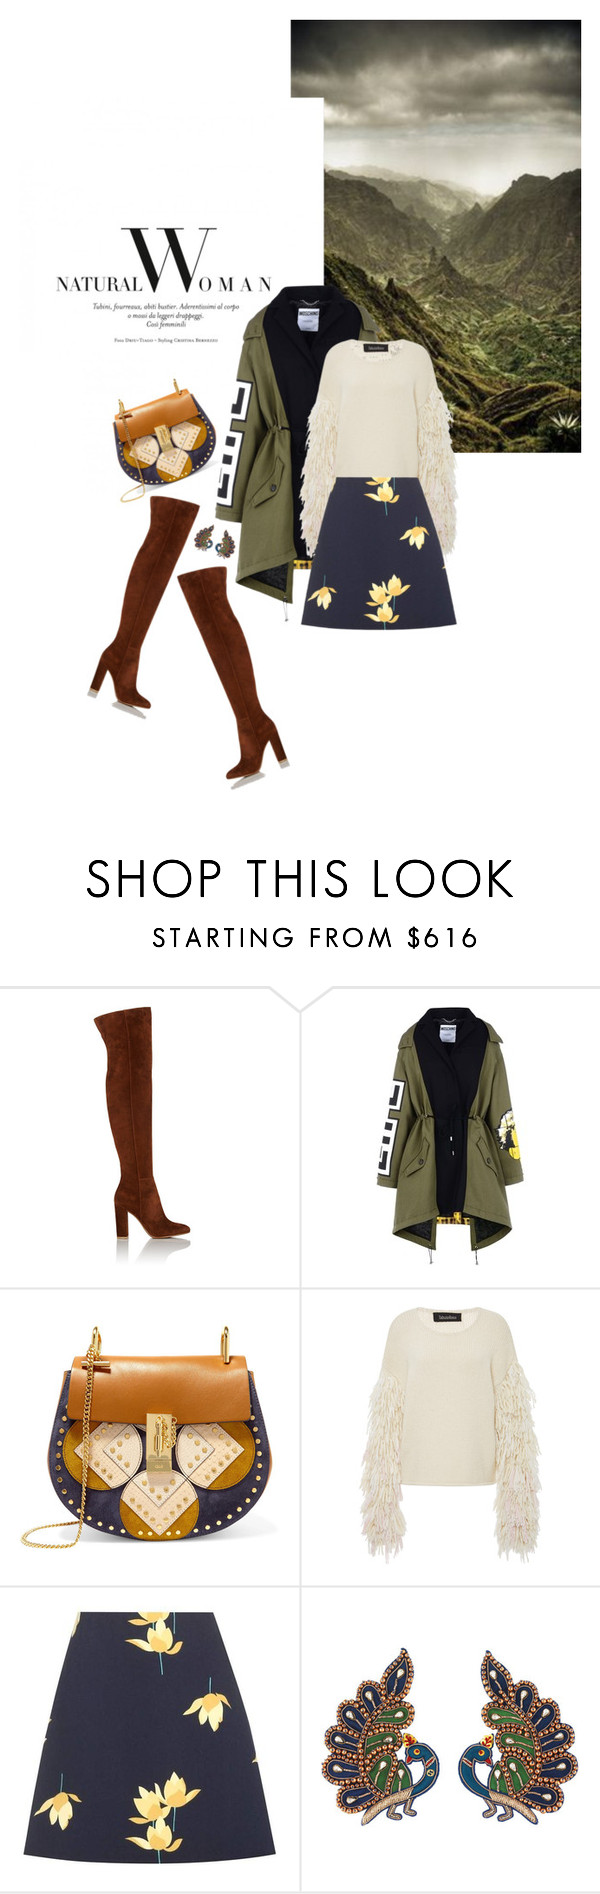 """""""Fall 2016: Trendy and chic"""" by ecletica-and-chic ❤ liked on Polyvore featuring Gianvito Rossi, Moschino, Chloé, Tabula Rasa, Marni and Gucci"""